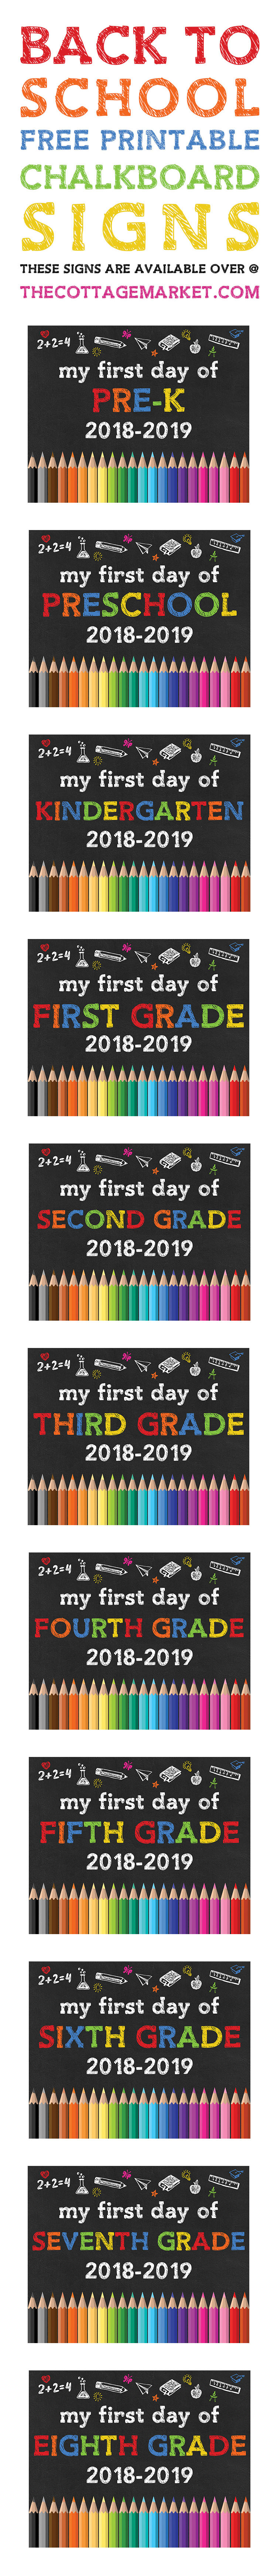 https://thecottagemarket.com/wp-content/uploads/2018/07/TCM-2018-2019-BacktoSchool-T-1.jpg